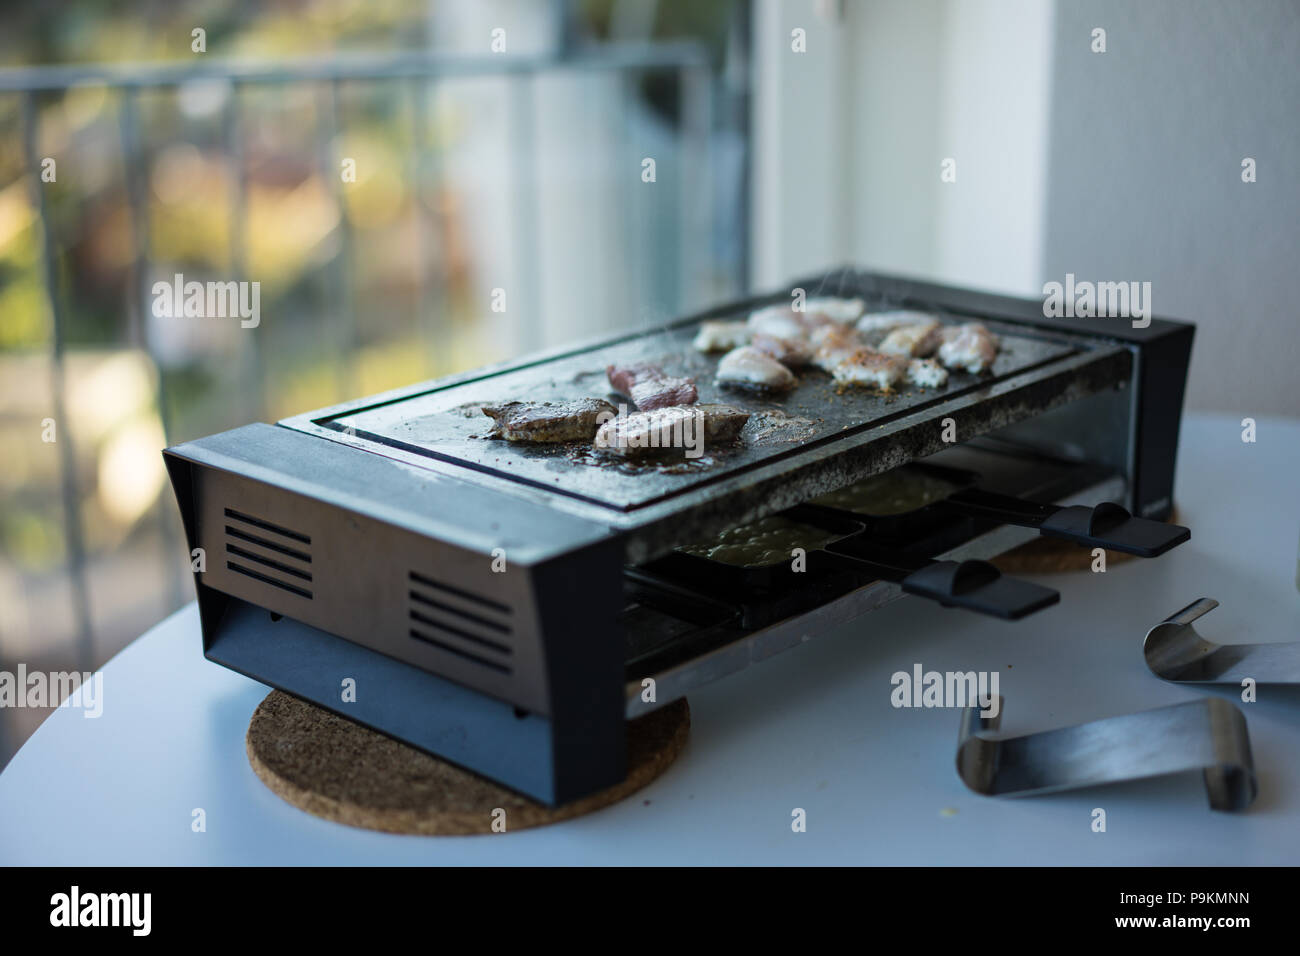 La Table A Raclette Raclette Grill Stock Photos Raclette Grill Stock Images Alamy